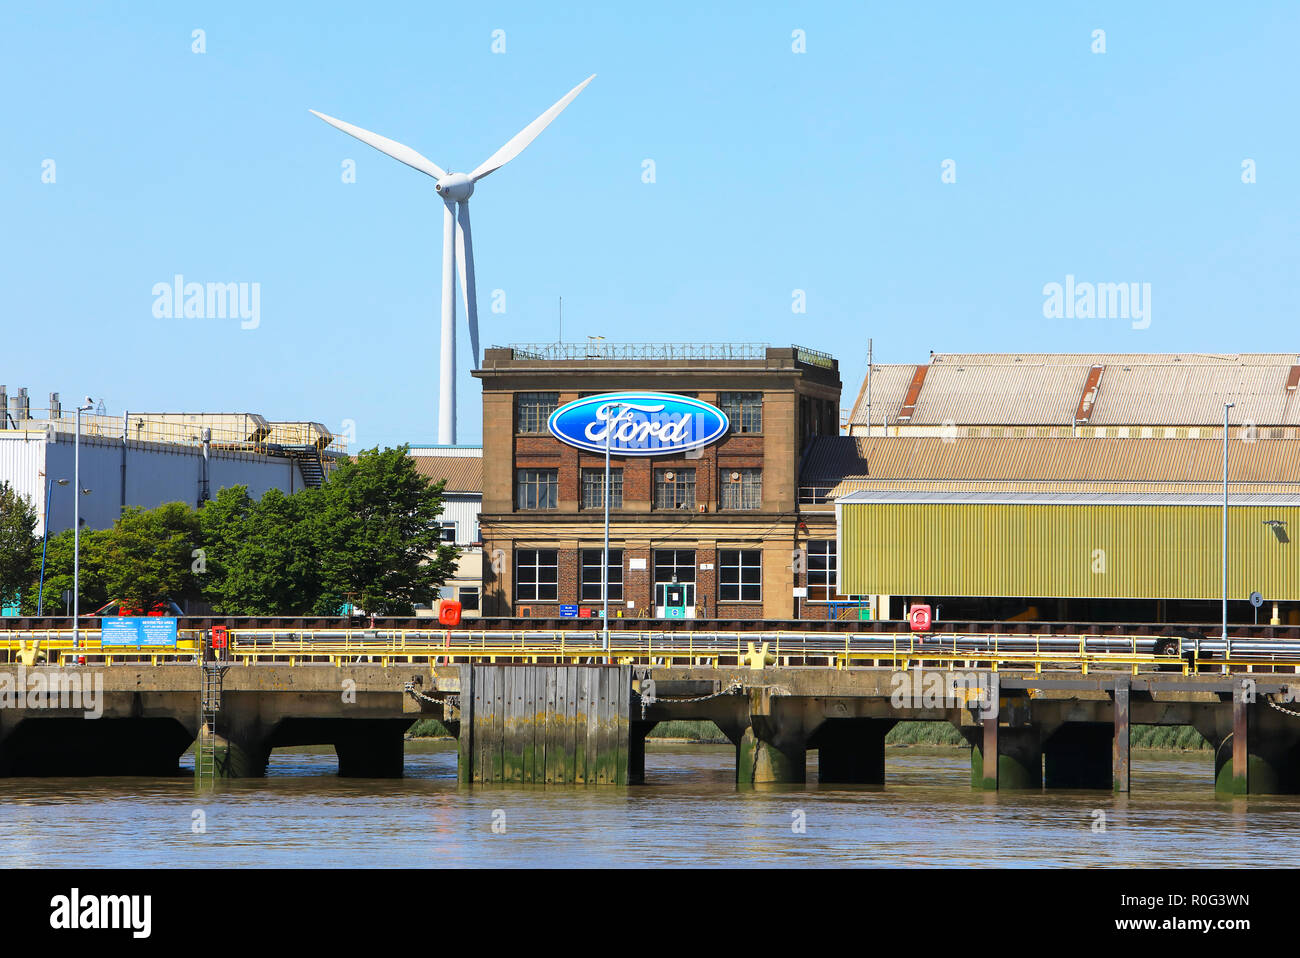 Dagenham Ford High Resolution Stock Photography And Images Alamy